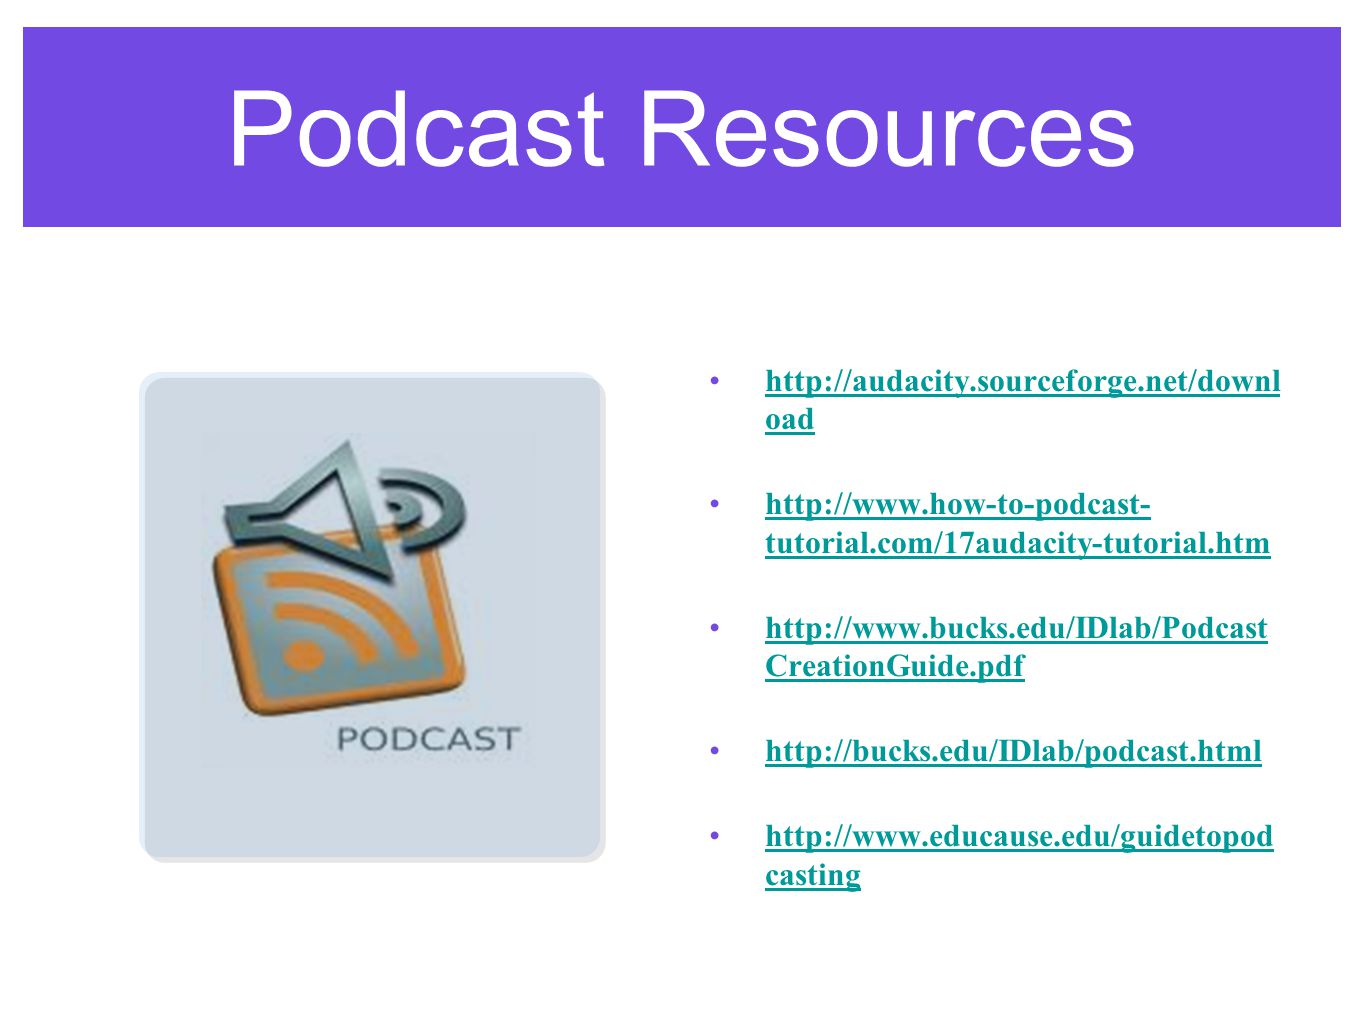 Podcast Resources http://audacity.sourceforge.net/downl oadhttp://audacity.sourceforge.net/downl oad http://www.how-to-podcast- tutorial.com/17audacity-tutorial.htmhttp://www.how-to-podcast- tutorial.com/17audacity-tutorial.htm http://www.bucks.edu/IDlab/Podcast CreationGuide.pdfhttp://www.bucks.edu/IDlab/Podcast CreationGuide.pdf http://bucks.edu/IDlab/podcast.html http://www.educause.edu/guidetopod castinghttp://www.educause.edu/guidetopod casting